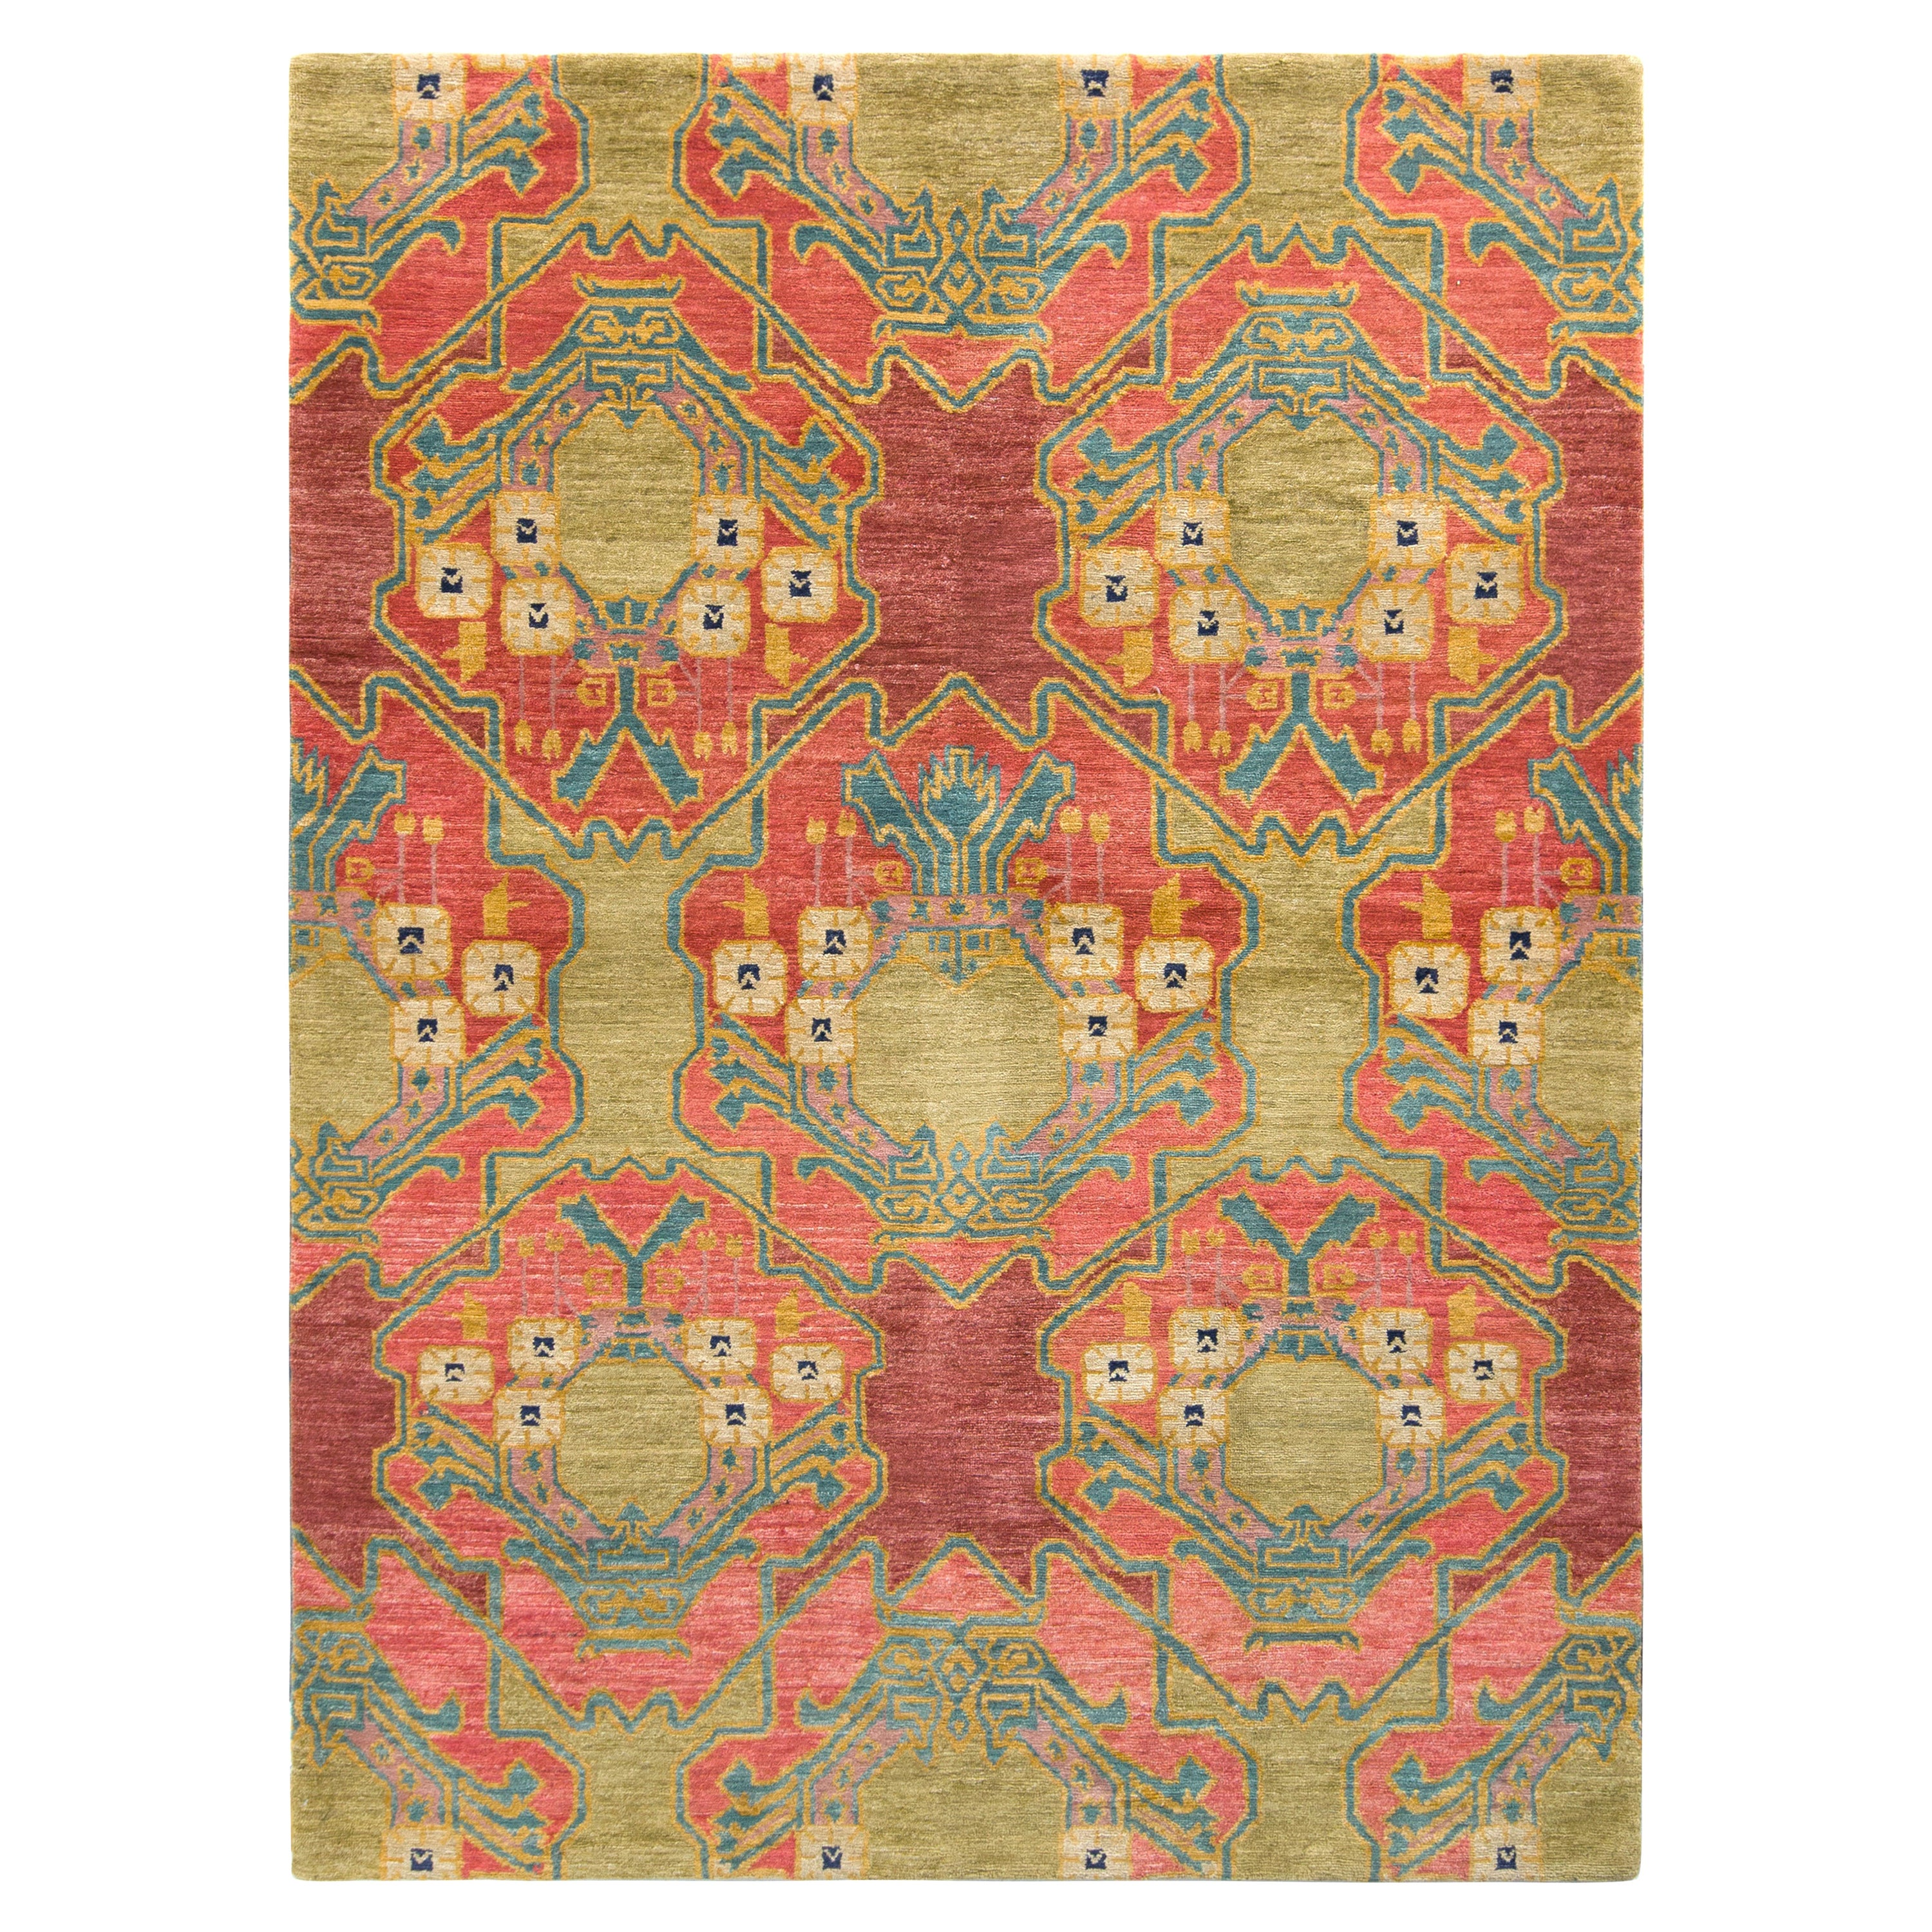 Rug & Kilim's Ersari Style Rug in Red and Green Geometric Pattern